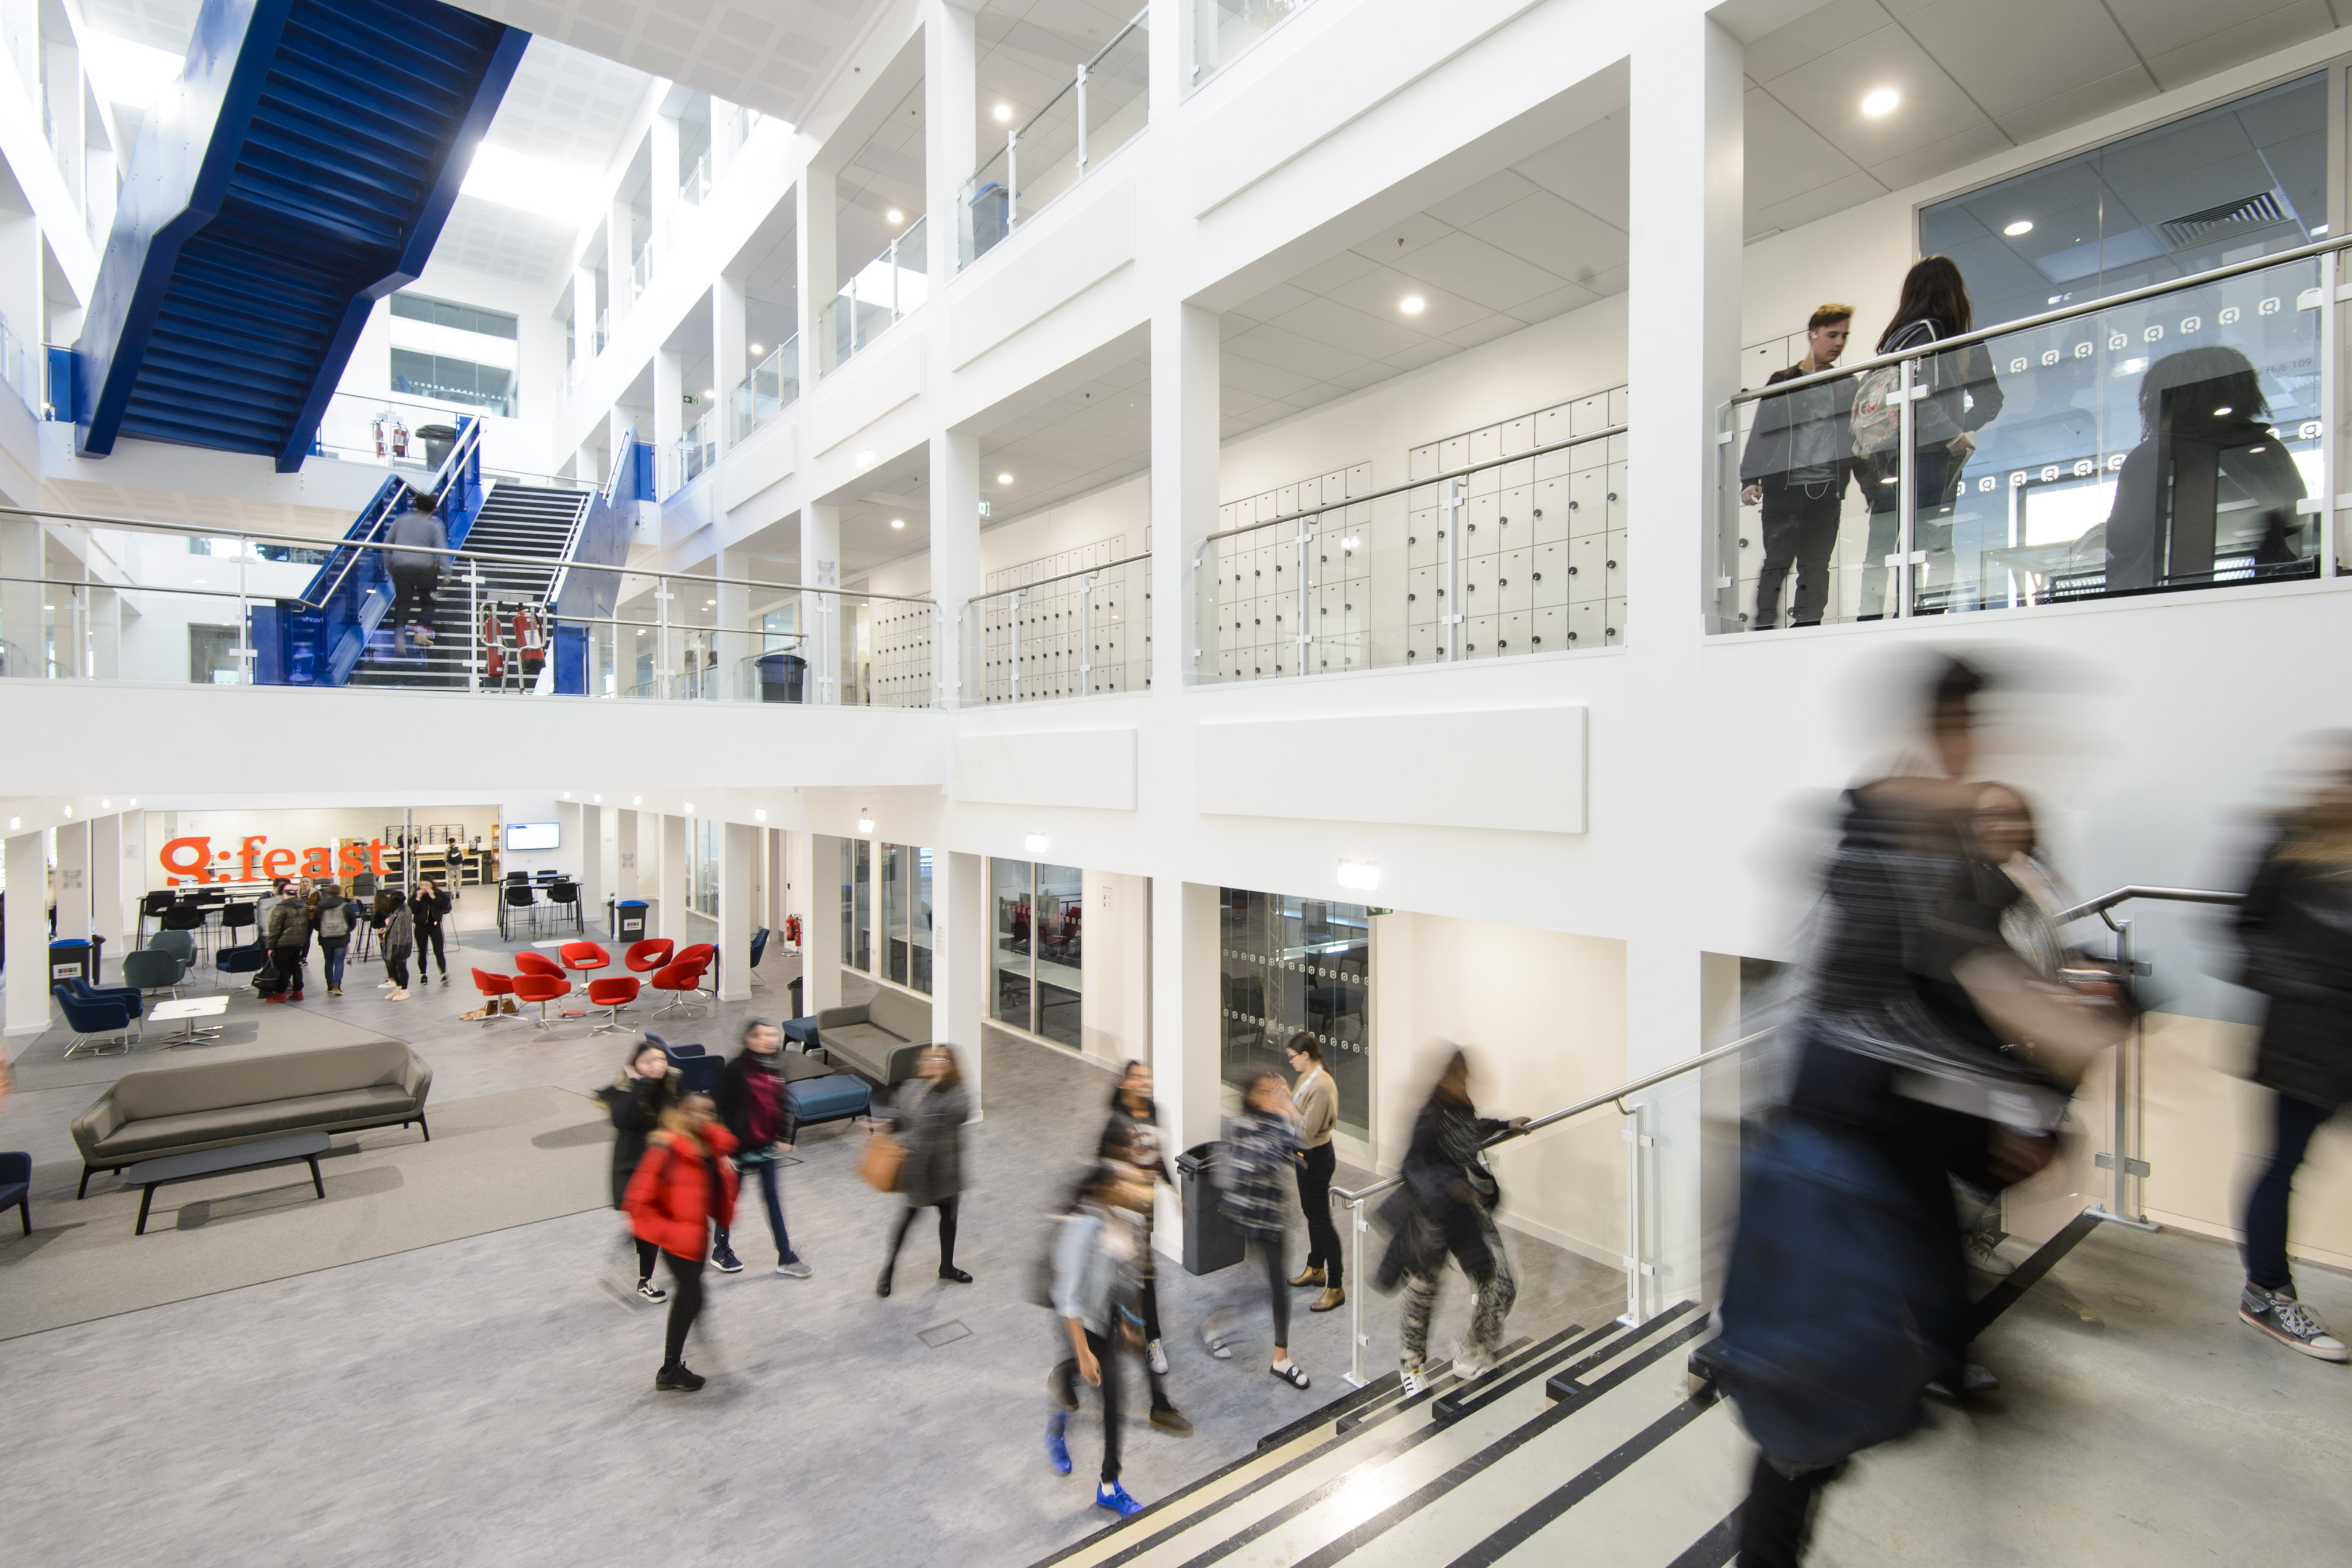 Global Academy interior